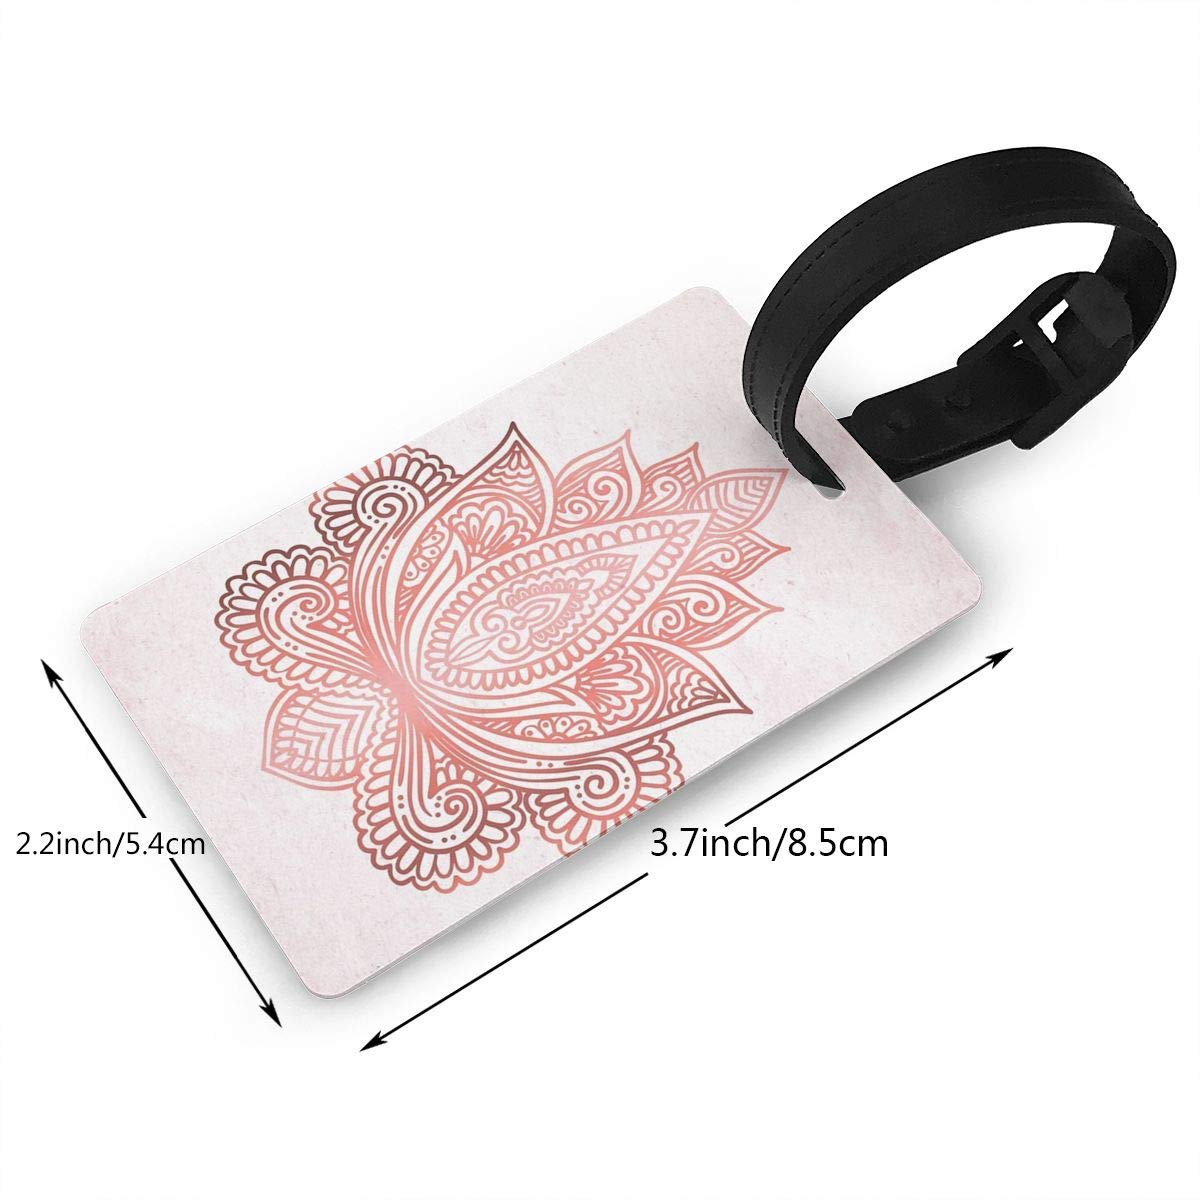 Rose Gold Lotus Luggage Tags Suitcase Labels Bag Travel Accessories Set of 2